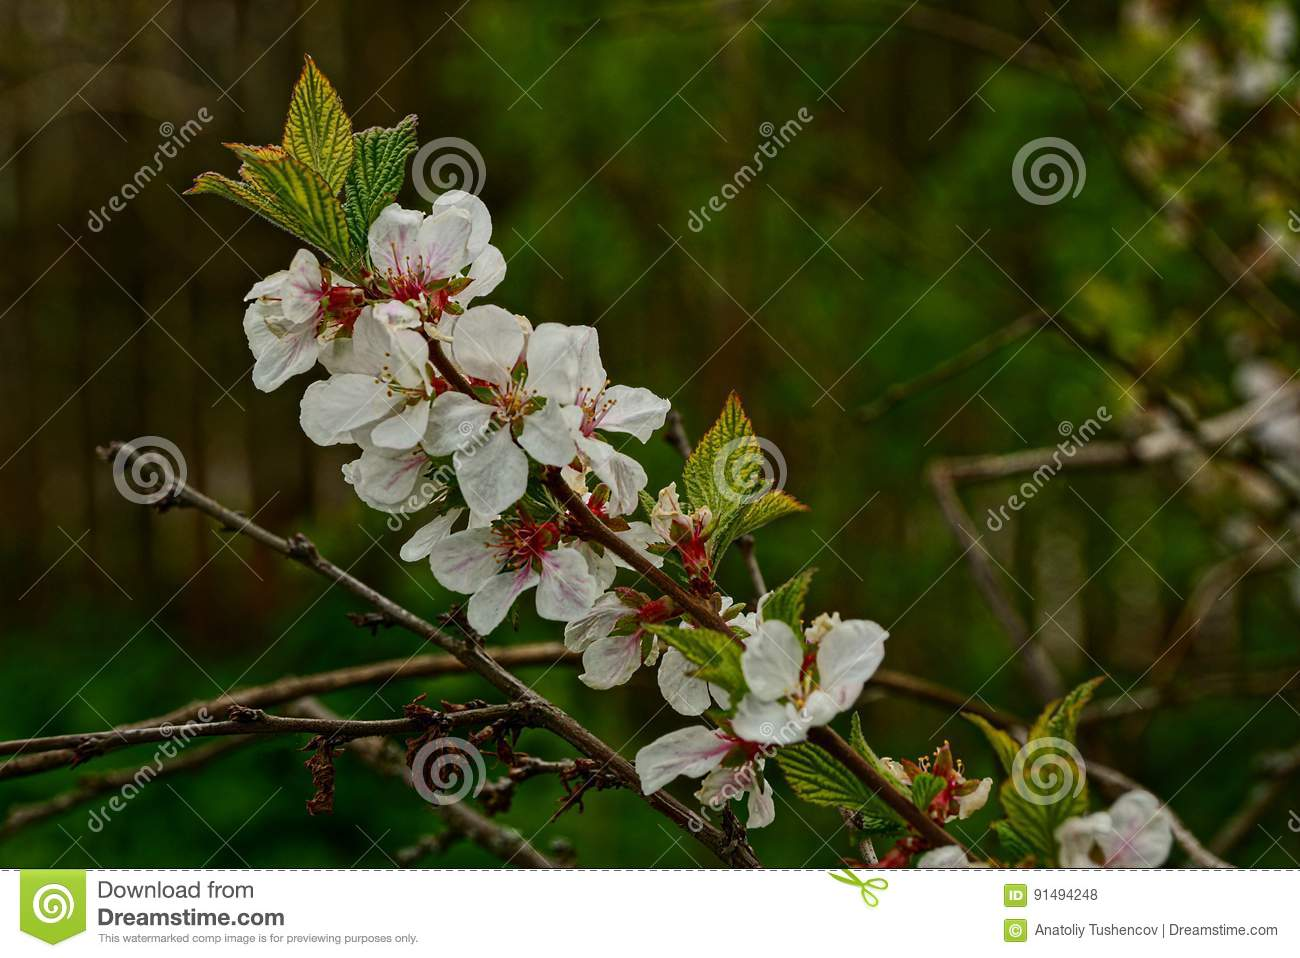 Flowering Branch Of A Cherry Tree With White Flowers Stock Photo